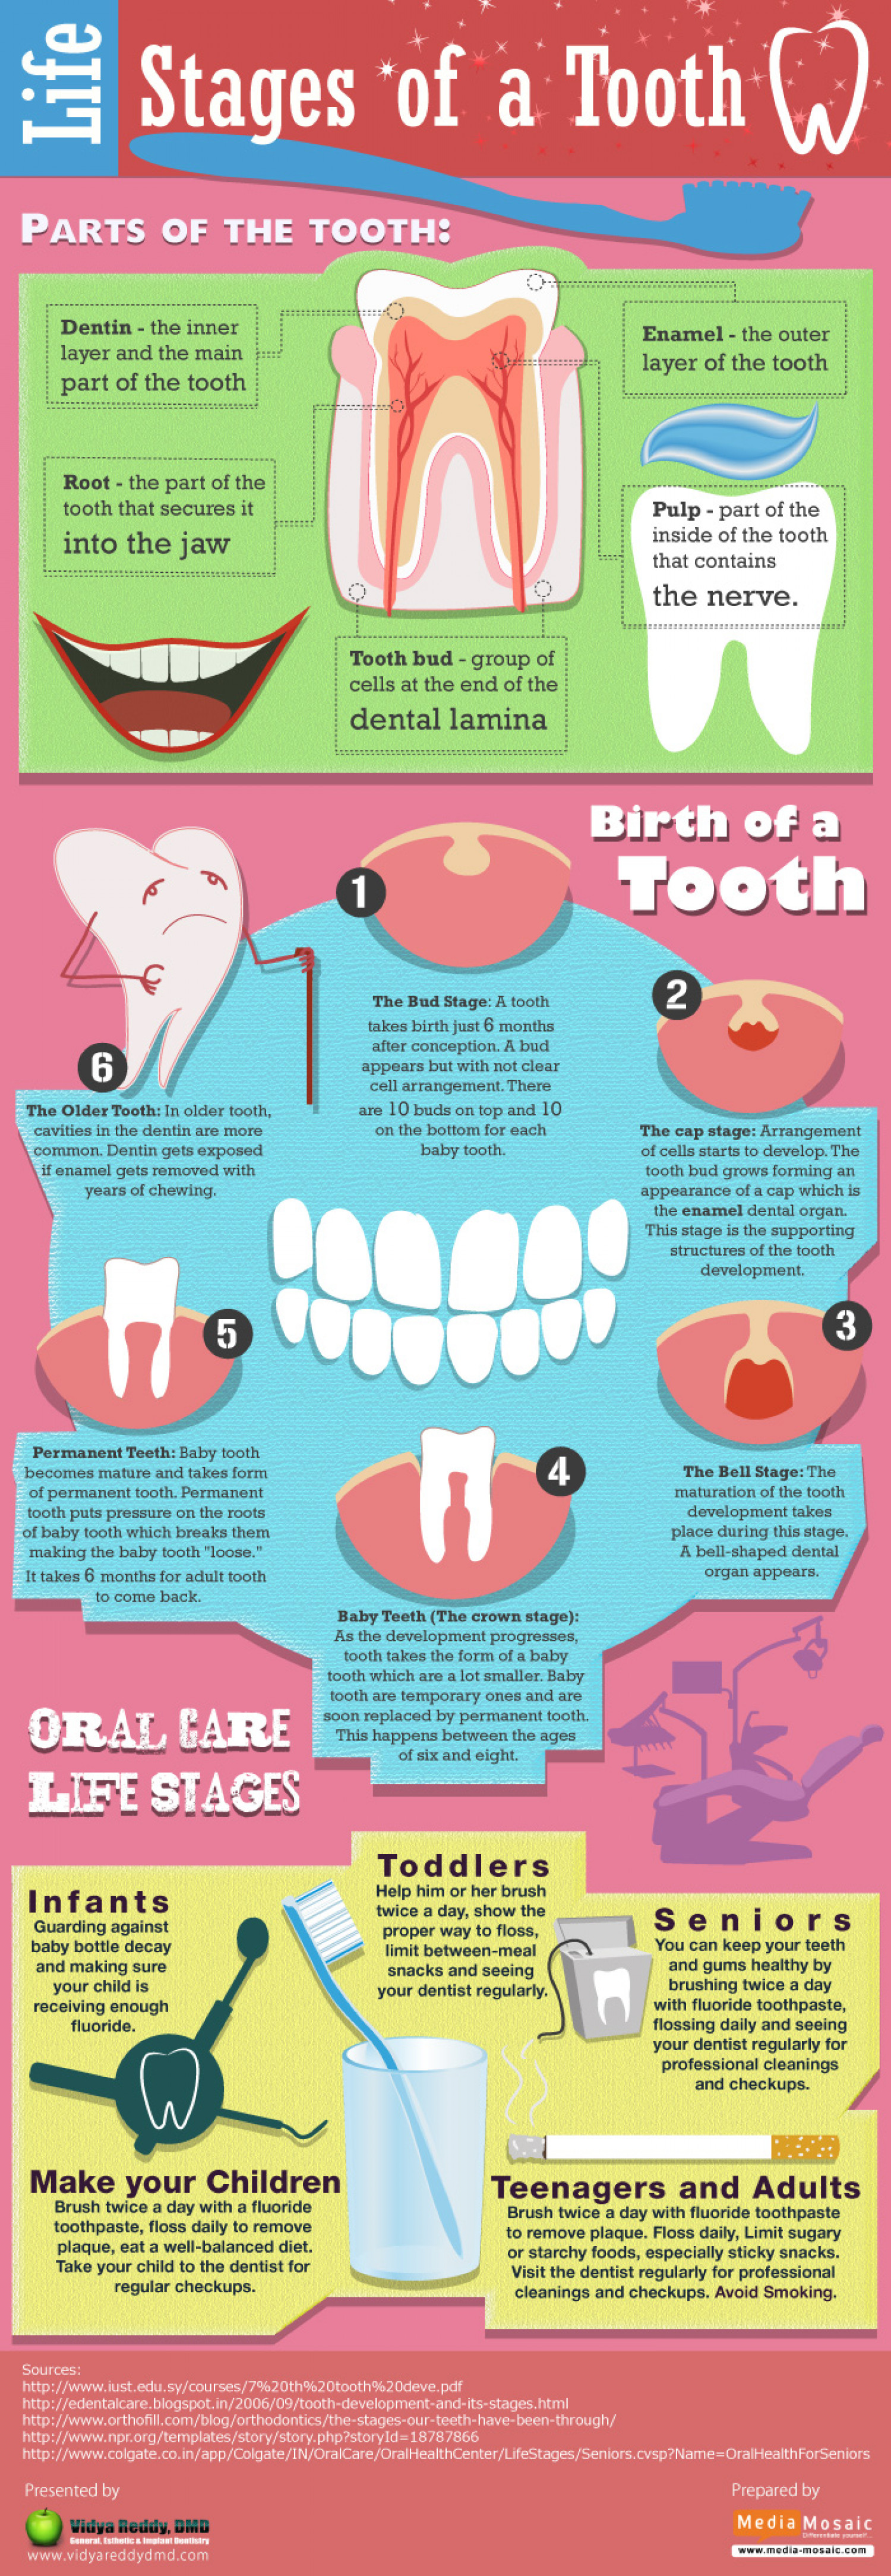 Life Stages of a Tooth Infographic